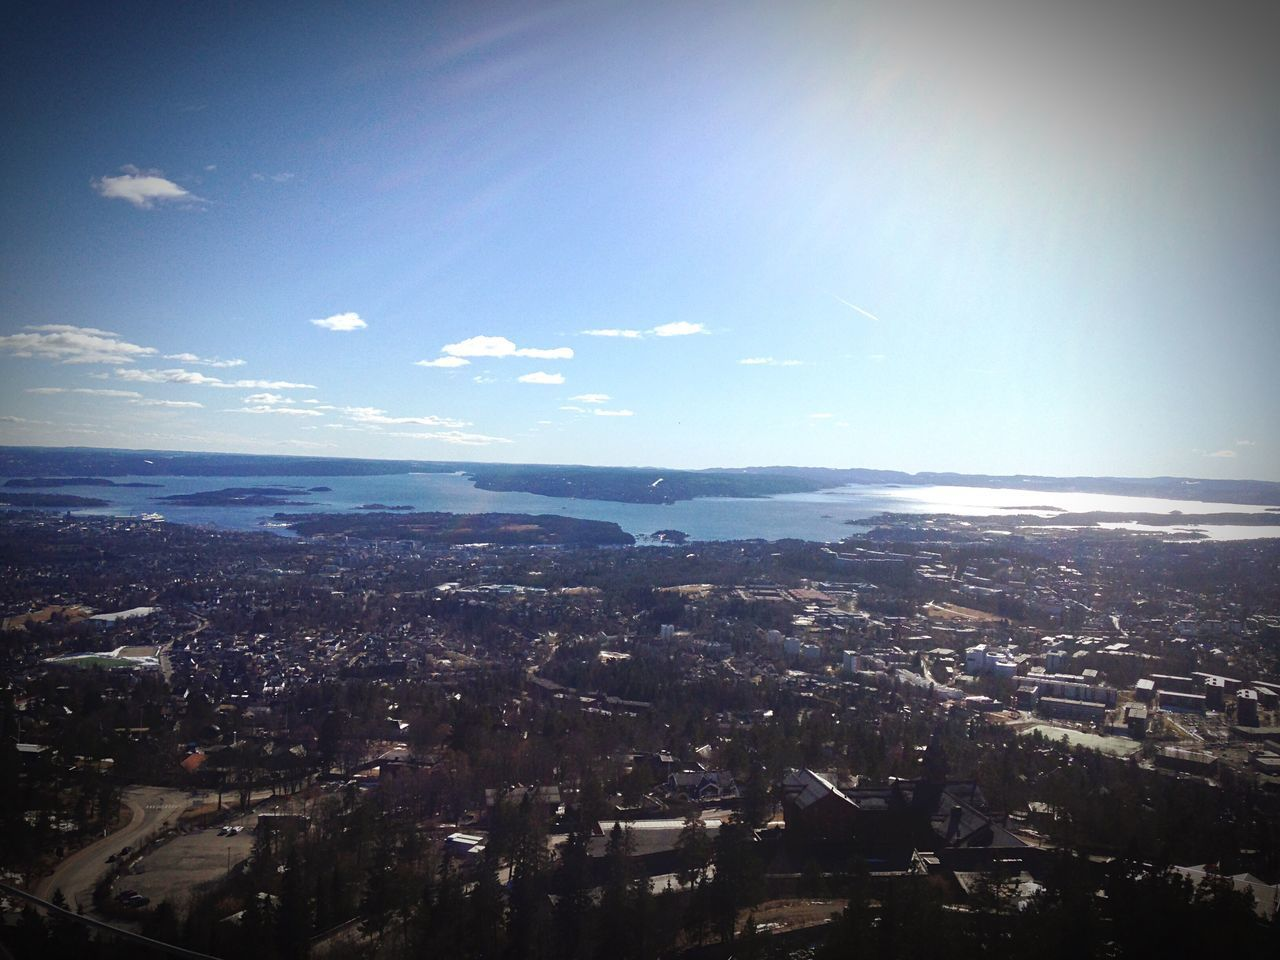 Flying High Cityscape City Crowded Architecture Aerial View Building Exterior Built Structure Sky Outdoors Day Holmenkollen Oslo